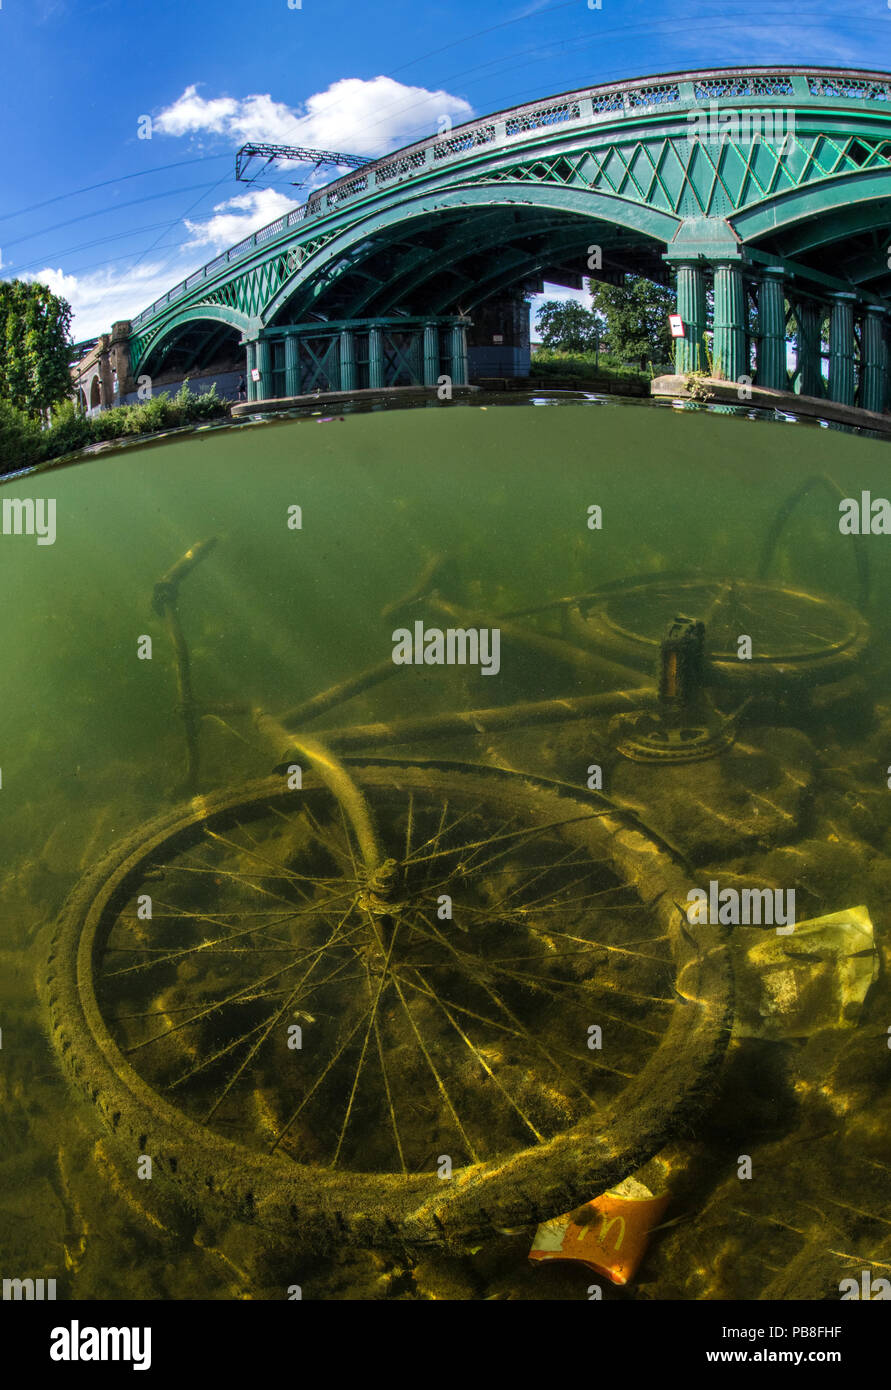 Discarded bicycle in the River Nene, Peterborough, Cambridgeshire, England. UK August.  The bridge was build by William Cubitt in 1850 and is the only cast iron bridge still in use on a major high speed train line. - Stock Image